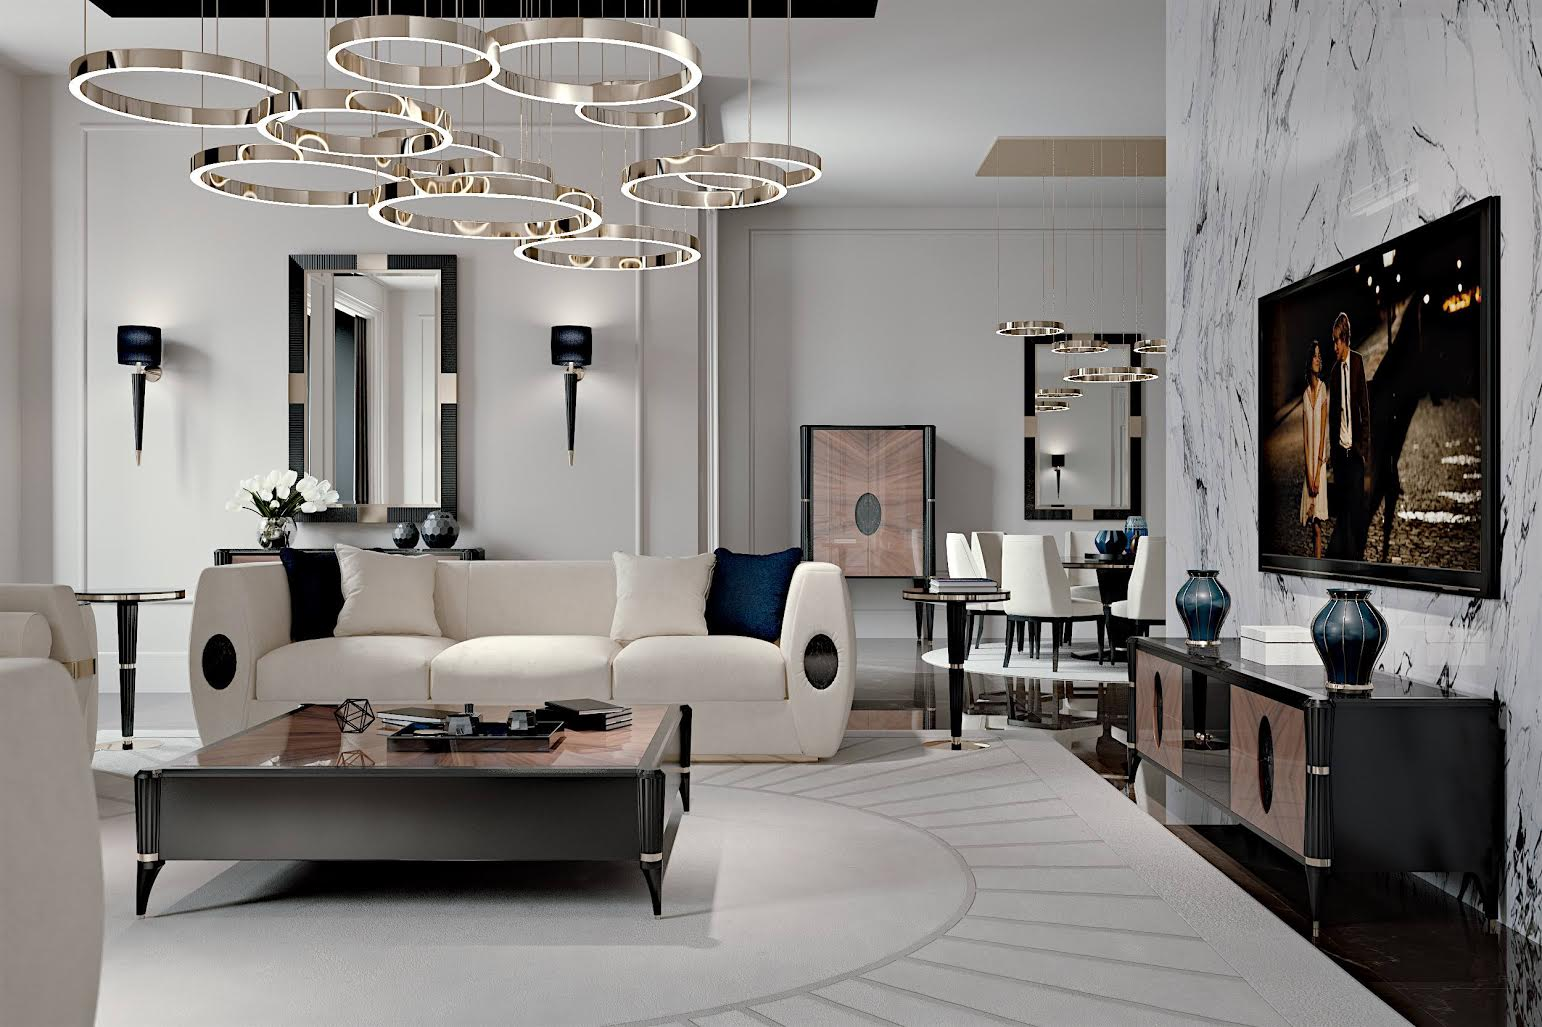 Lo stile luxury classico di francesco pasi in scena al for Salone del mobile 3018